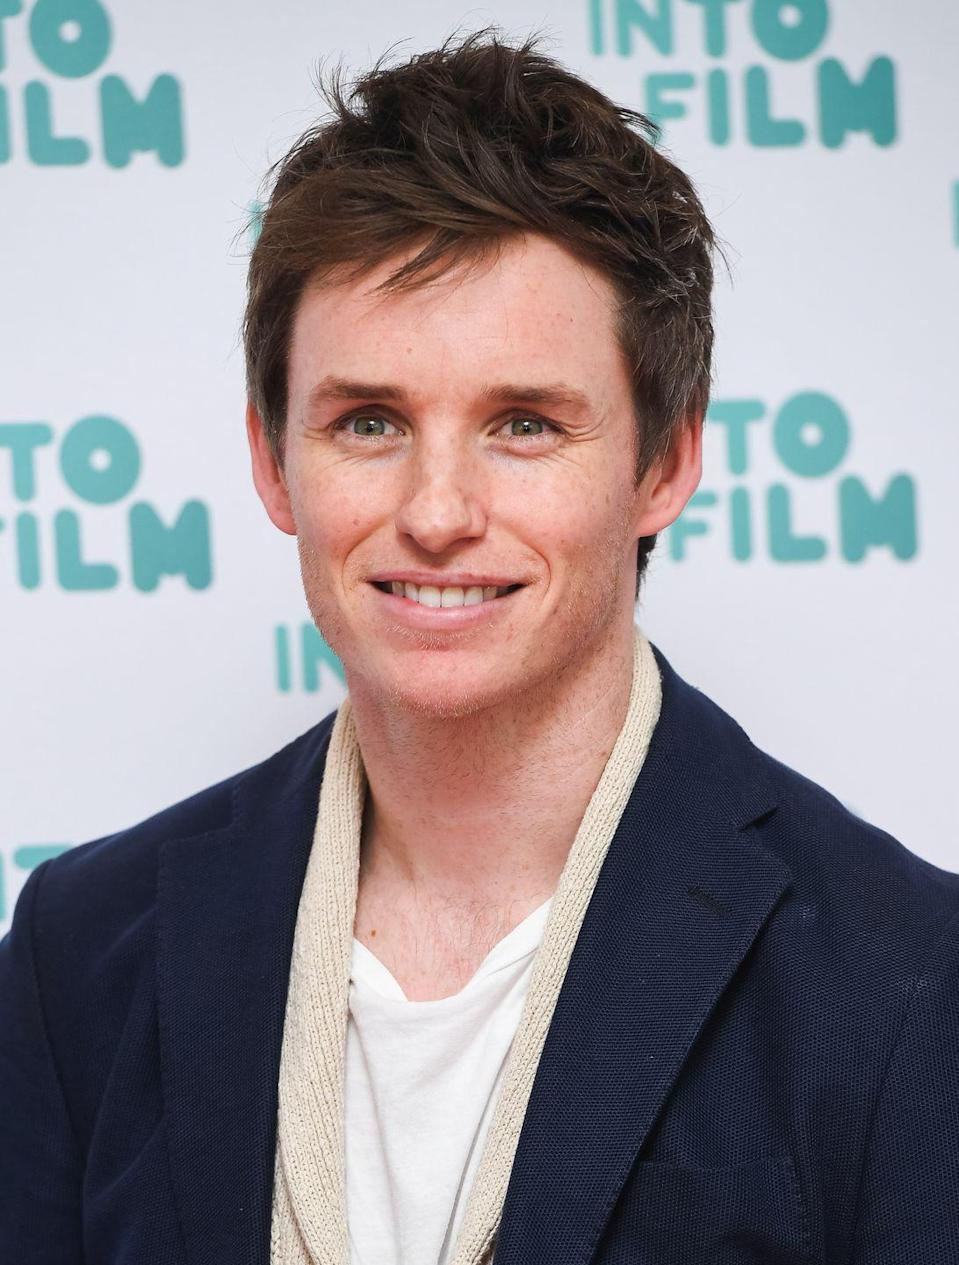 """<p><strong>The role:</strong> <a href=""""http://metro.co.uk/2016/10/25/fantastic-beasts-and-where-to-find-them-star-eddie-redmayne-once-auditioned-to-play-voldemort-6214492/"""" rel=""""nofollow noopener"""" target=""""_blank"""" data-ylk=""""slk:Tom Riddle"""" class=""""link rapid-noclick-resp"""">Tom Riddle</a> in <em>Harry Potter and the Chamber of Secrets </em>(2002)</p><p><strong>Who *actually* played it:</strong> Christian Coulson </p><p><strong>The role they played instead:</strong> Newt Scamander in <em>Fantastic Beasts and Where to Find Them</em> (2016)</p><p>Redmayne told <em><a href=""""https://www.empireonline.com/movies/news/exclusive-fantastic-beasts-images/"""" rel=""""nofollow noopener"""" target=""""_blank"""" data-ylk=""""slk:Empire"""" class=""""link rapid-noclick-resp"""">Empire</a> </em>he auditioned for the part of Tom Riddle while in college, but """"properly failed and didn't get a callback."""" Years later his dream of being in a <em>Harry Potter </em>movie came true.</p>"""